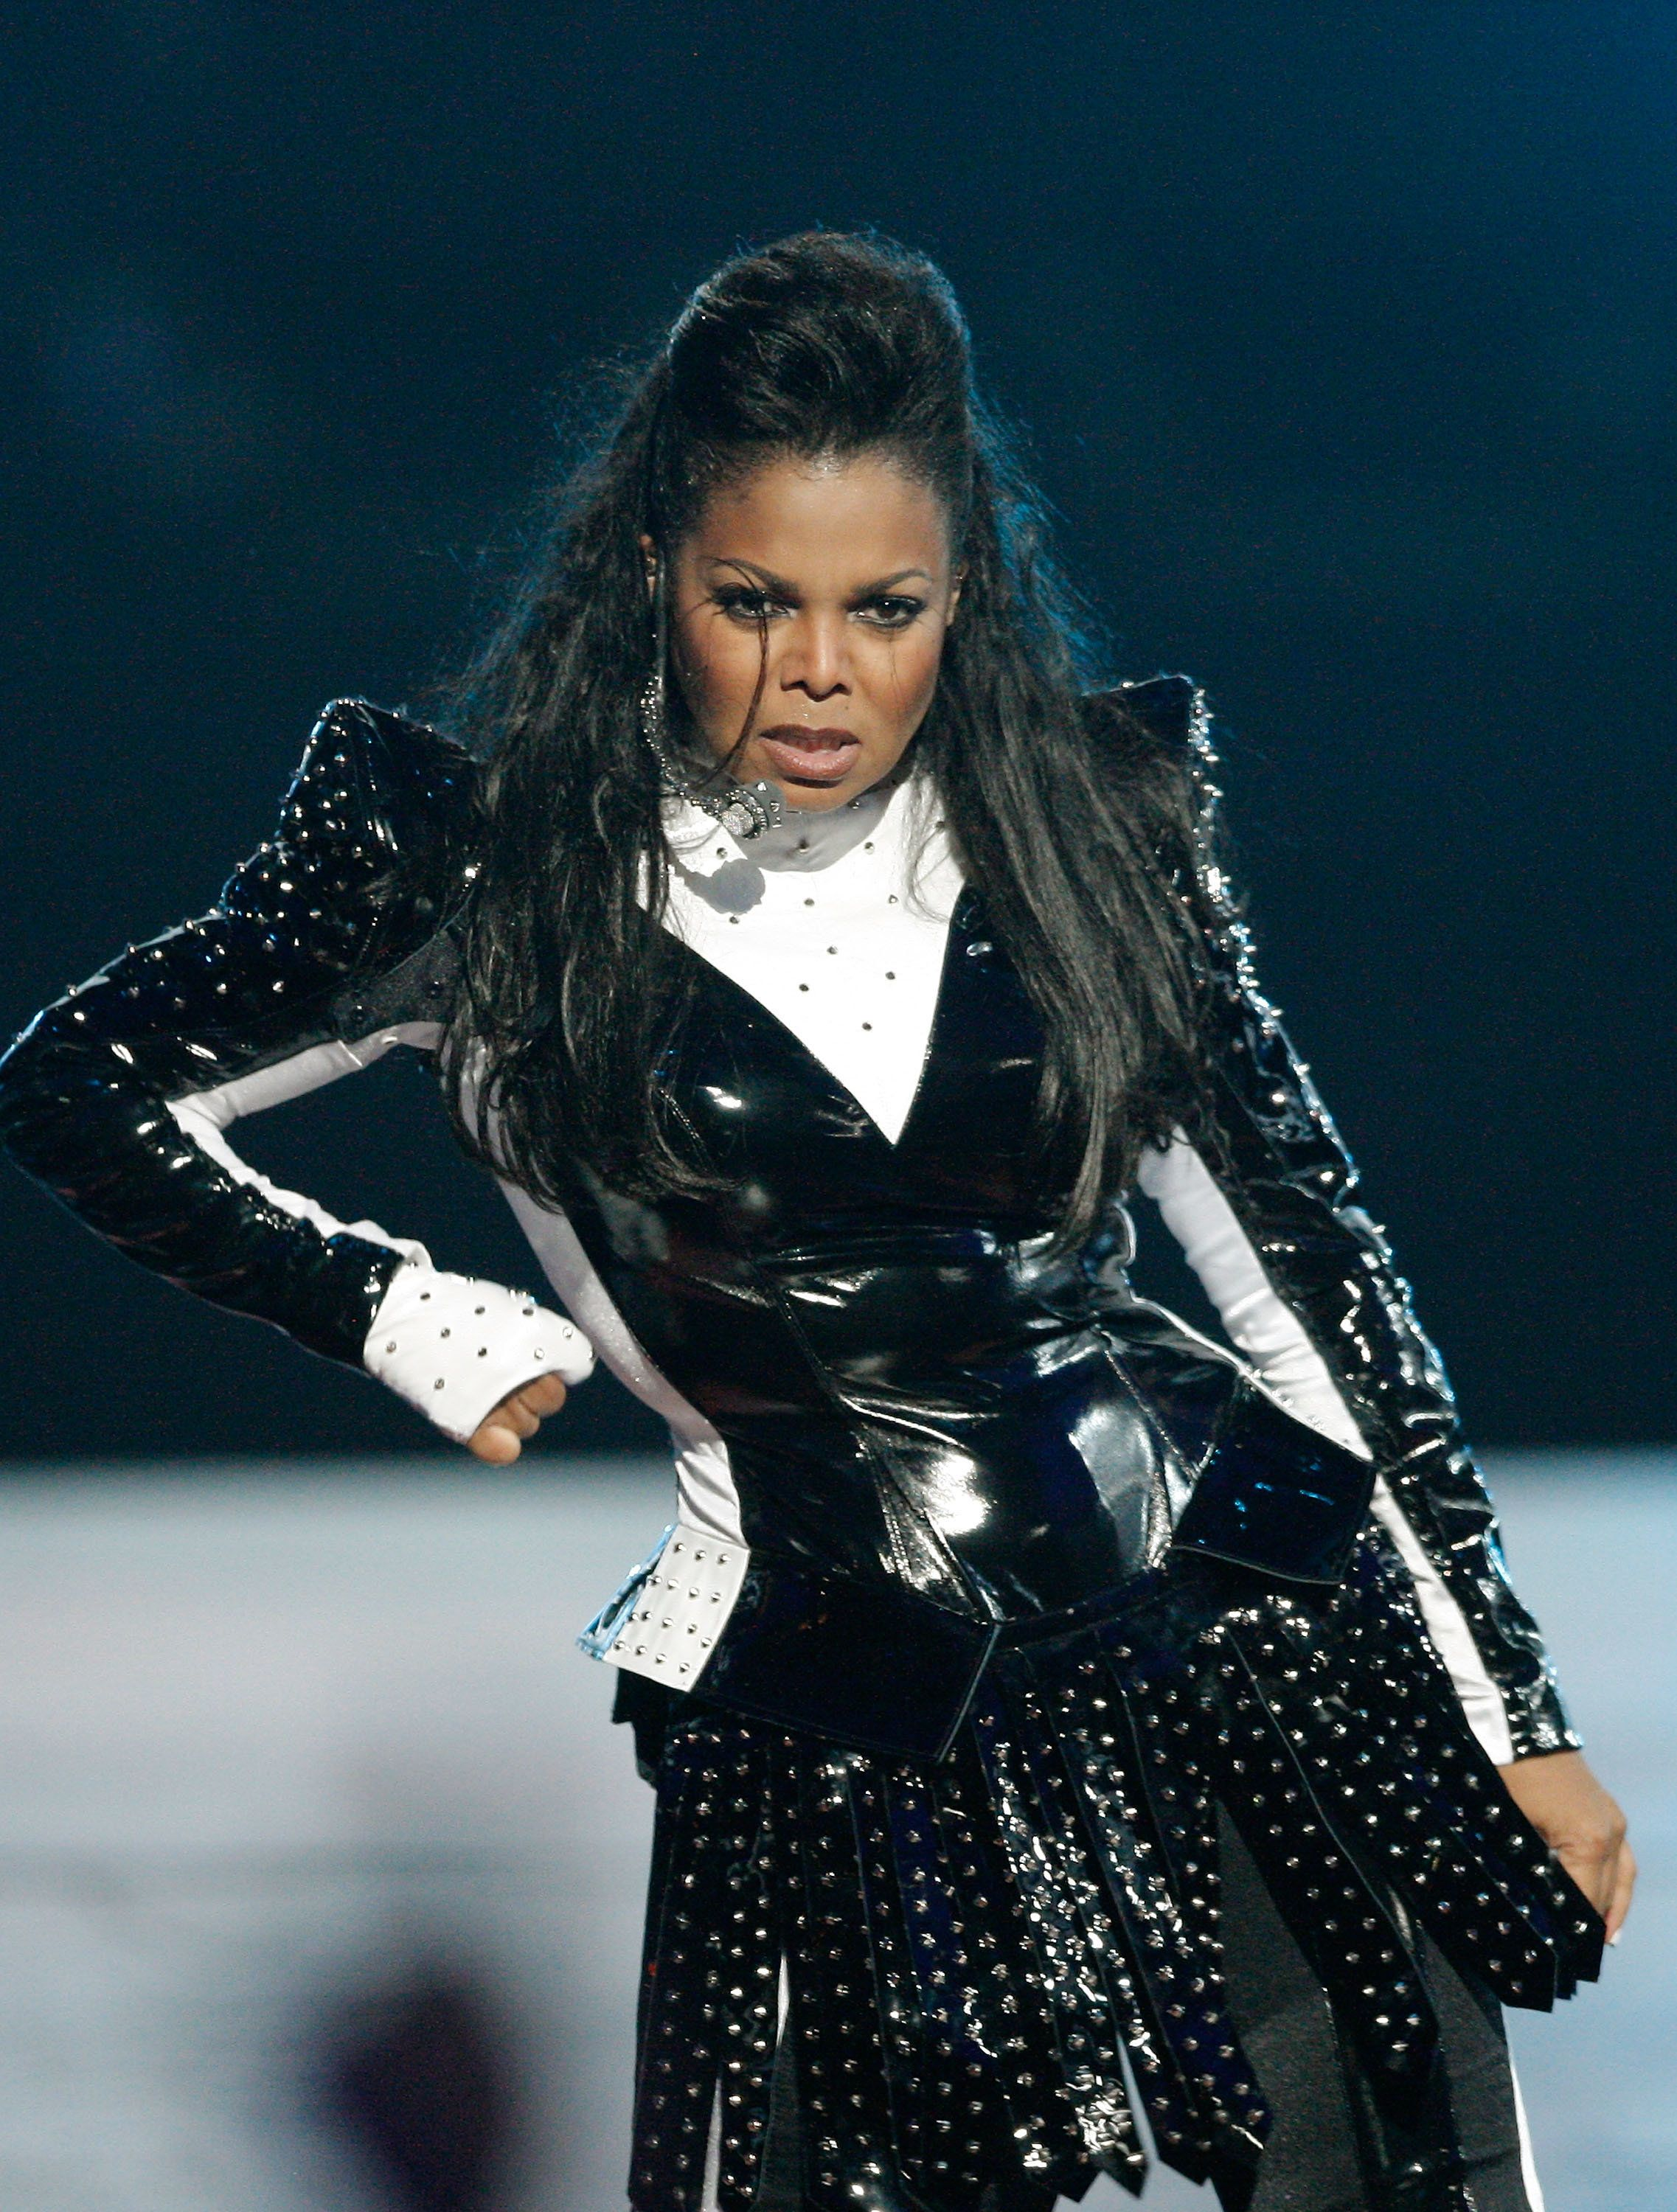 Performingduring the MTV Video Music Awards in New York City.